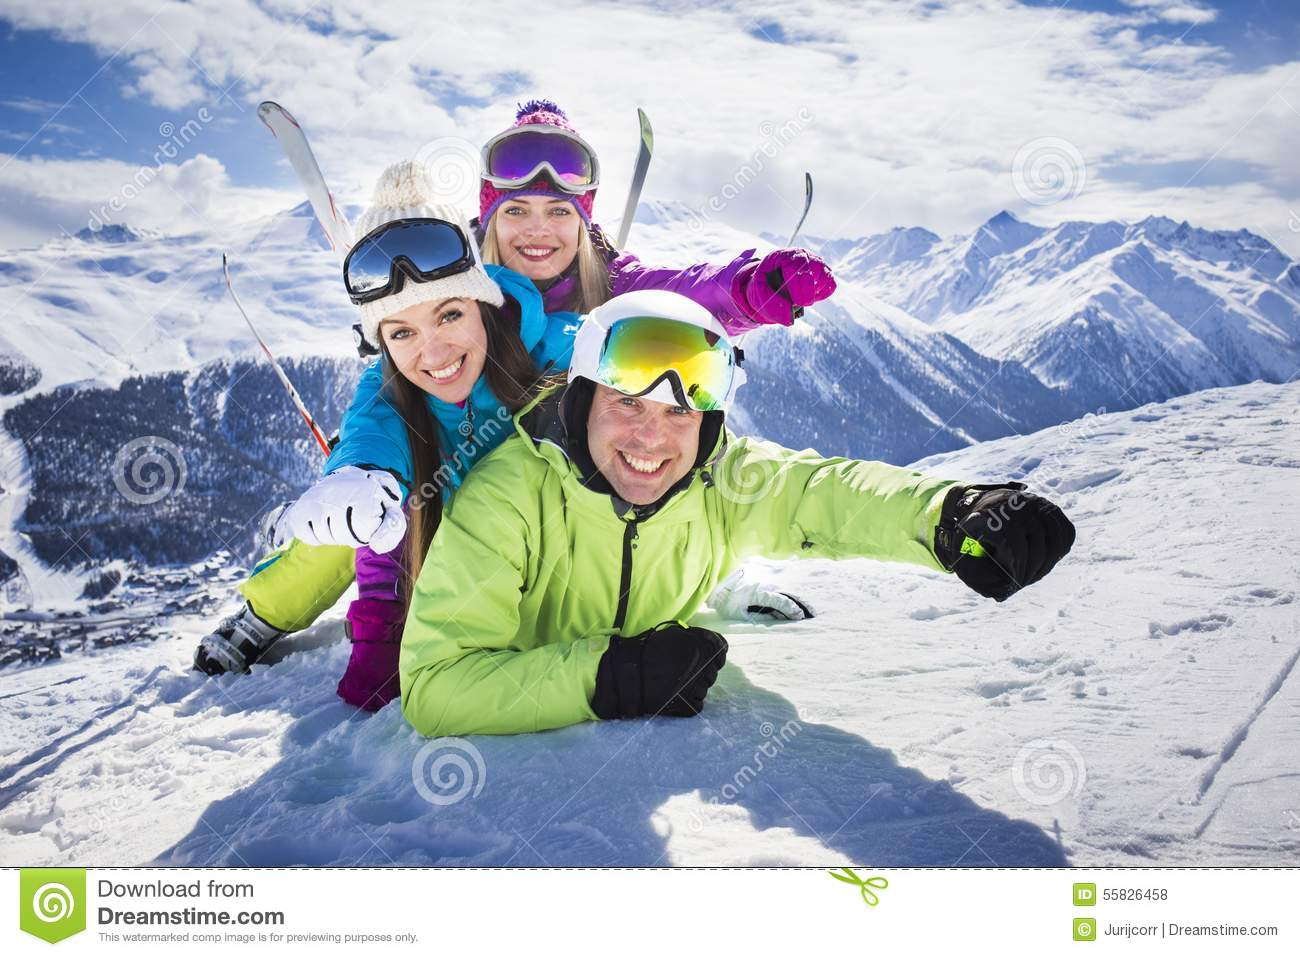 Young People Funny Action Winter Ski Resort Stock Photo